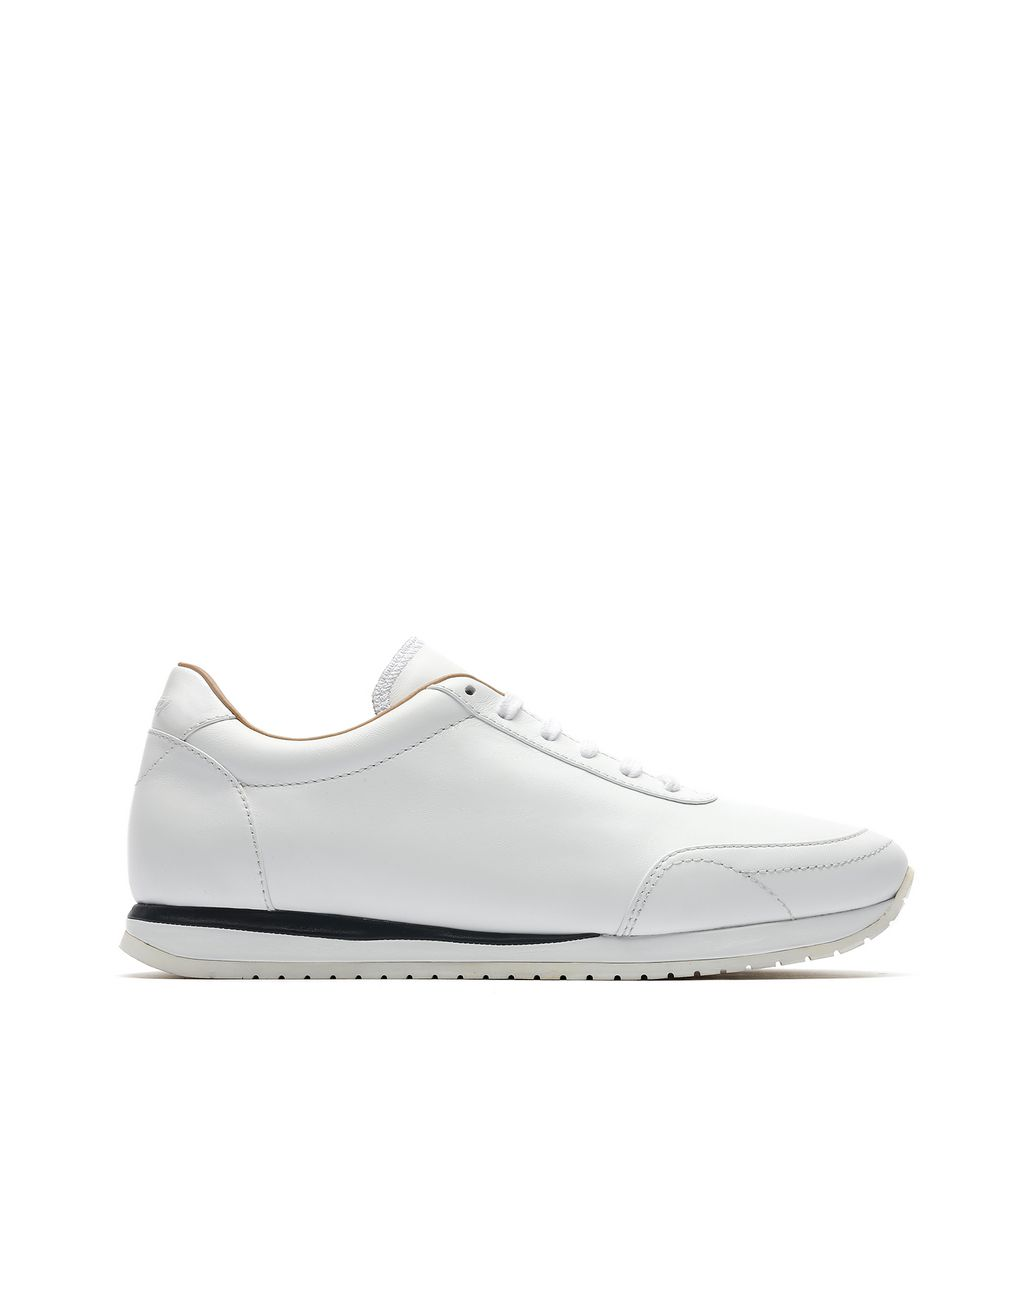 BRIONI White and Navy Blue Runner Sneakers Sneakers Man f